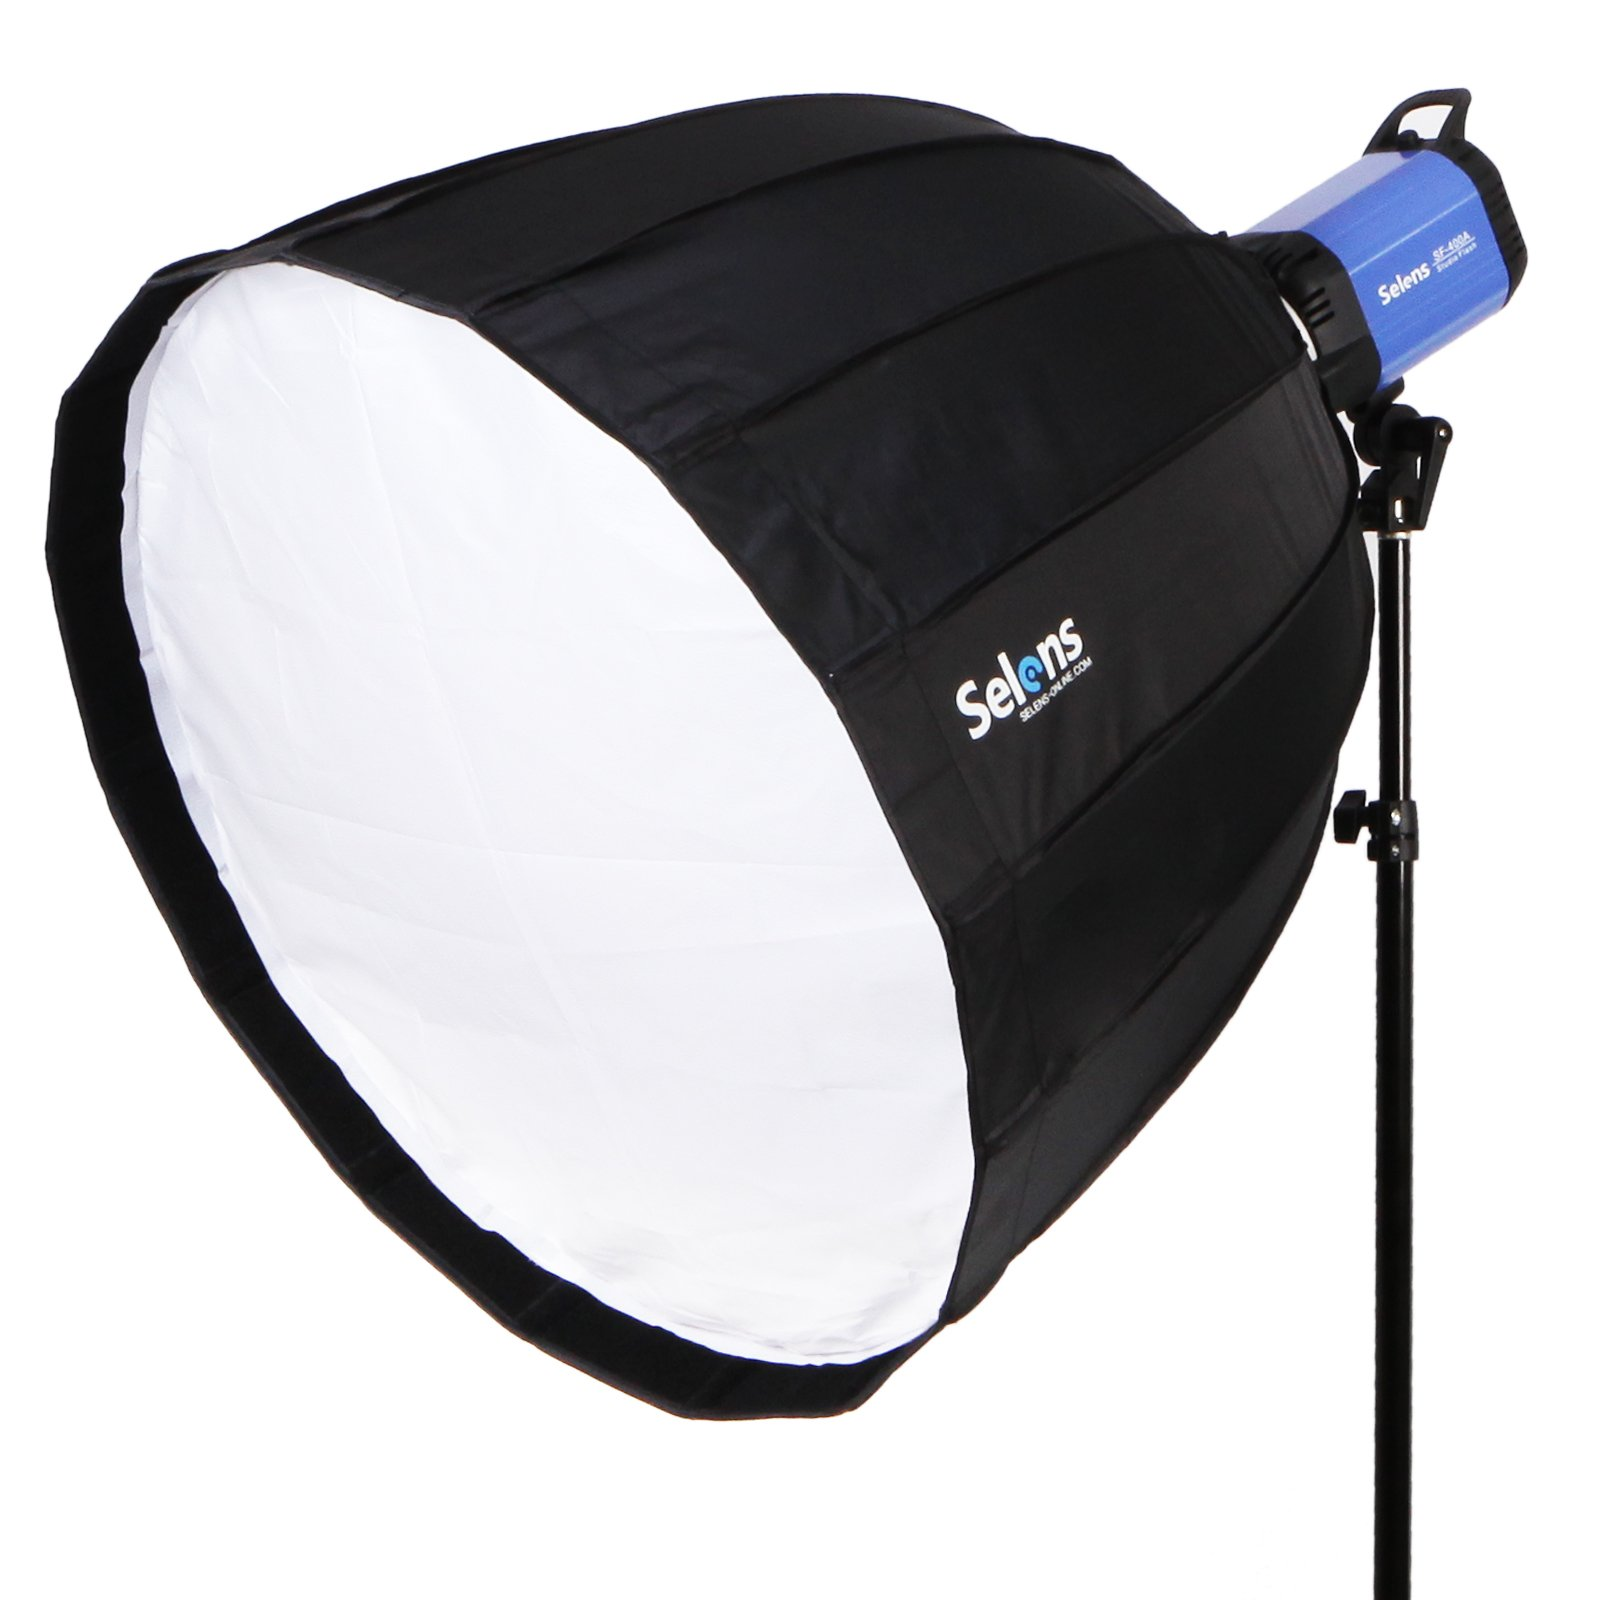 Selens Parabolic Deep Softbox 28 inches / 70 Centimeters Hexadecagon Quick Collapsible Umbrella Softbox with Bowens Speedring Mount for Photo Studio Lighting Flash Light